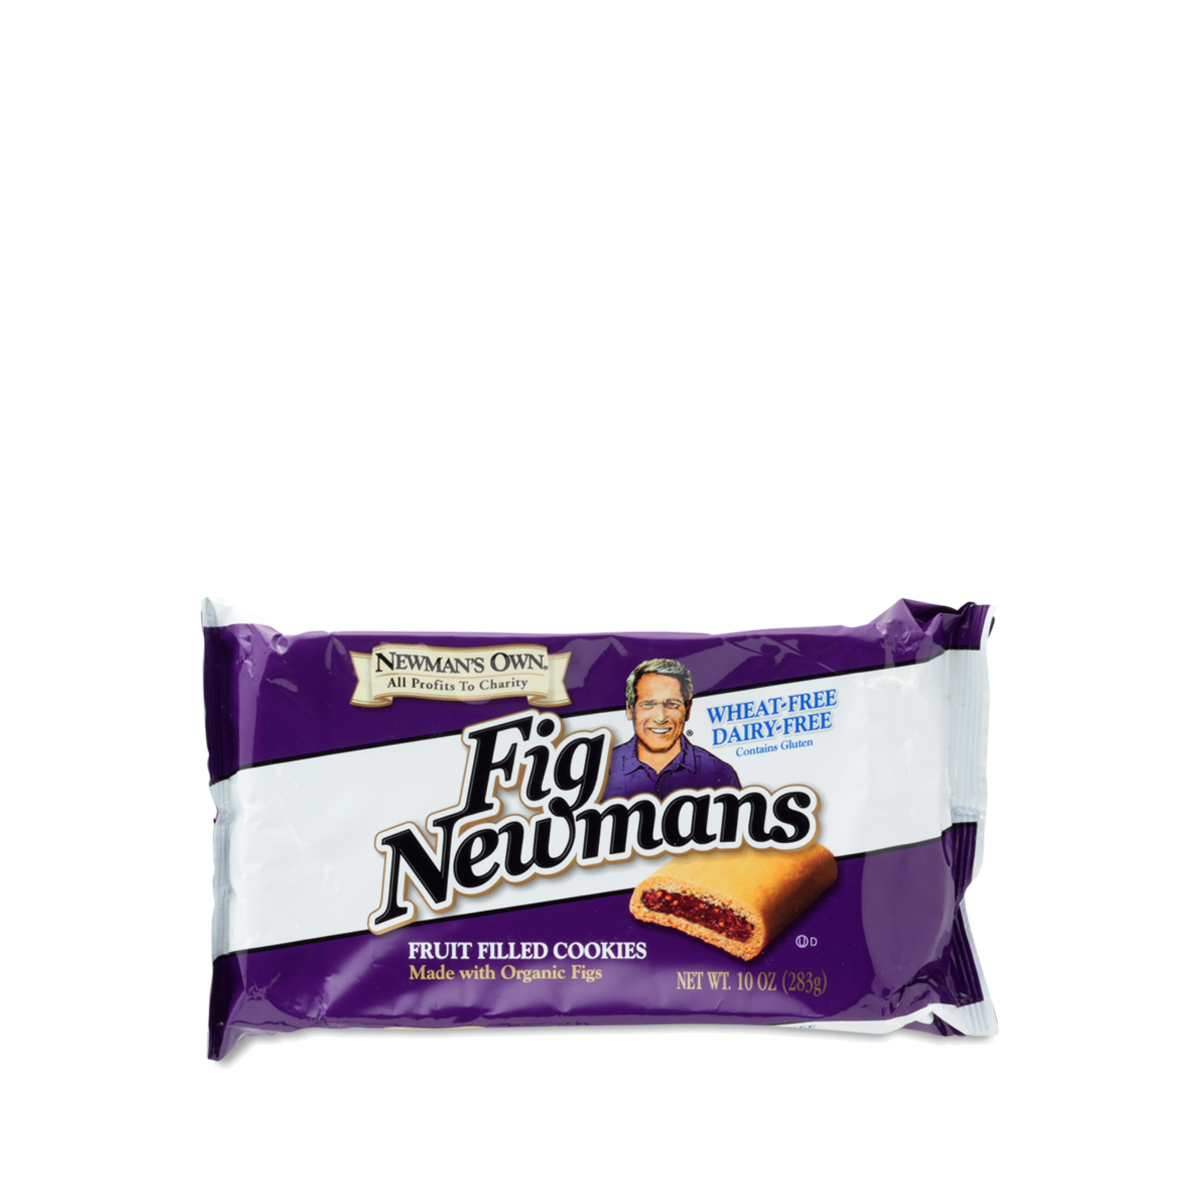 Newman's Own Fig Newmans Wheat Free Dairy Free -- 10 oz